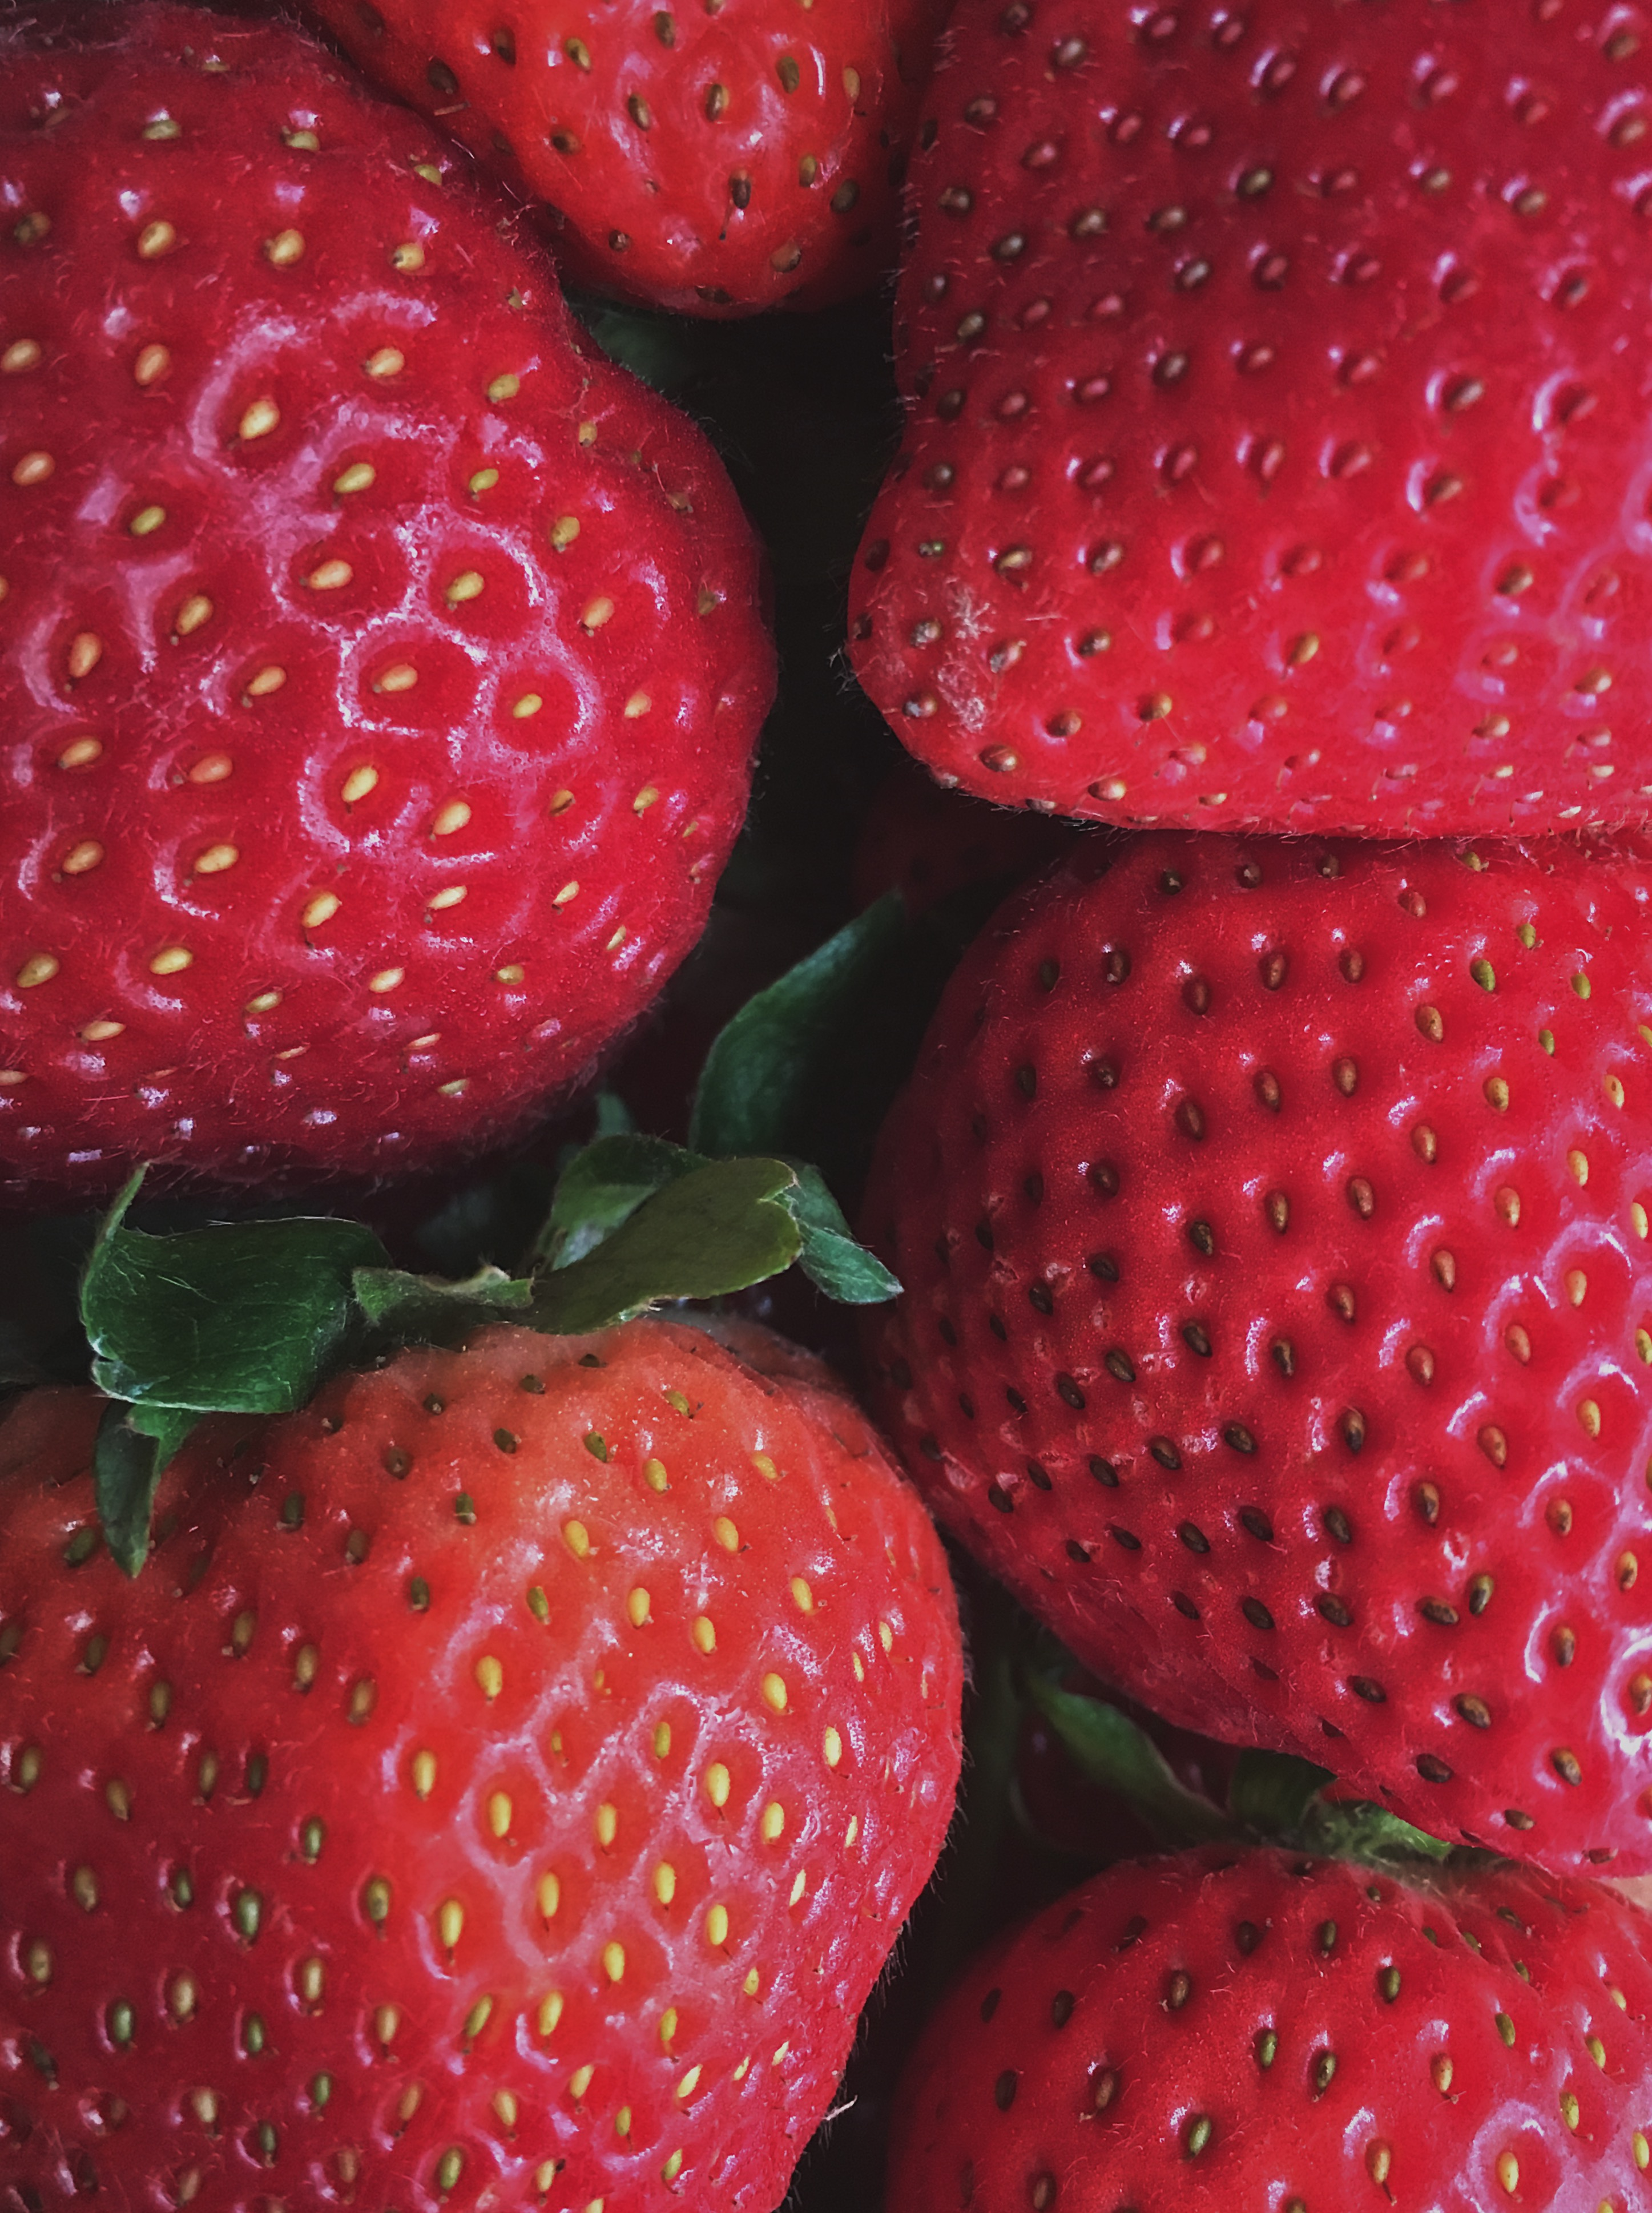 close up image of strawberries